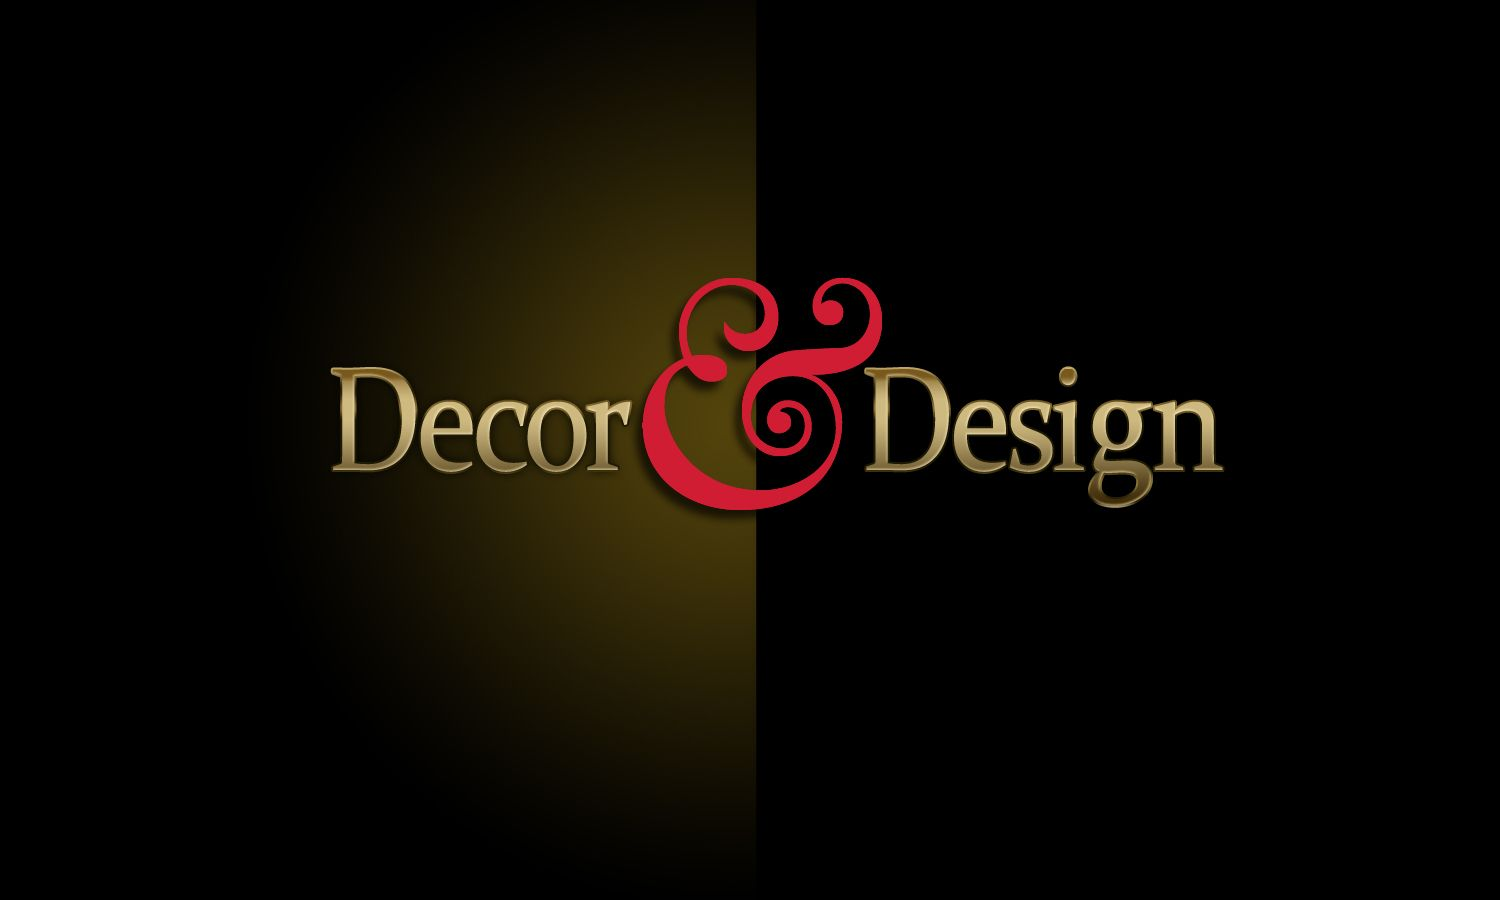 Business Card Designs For Long Island Interior Designer Interior Designer Business Card Design Company Names Interior Design Business